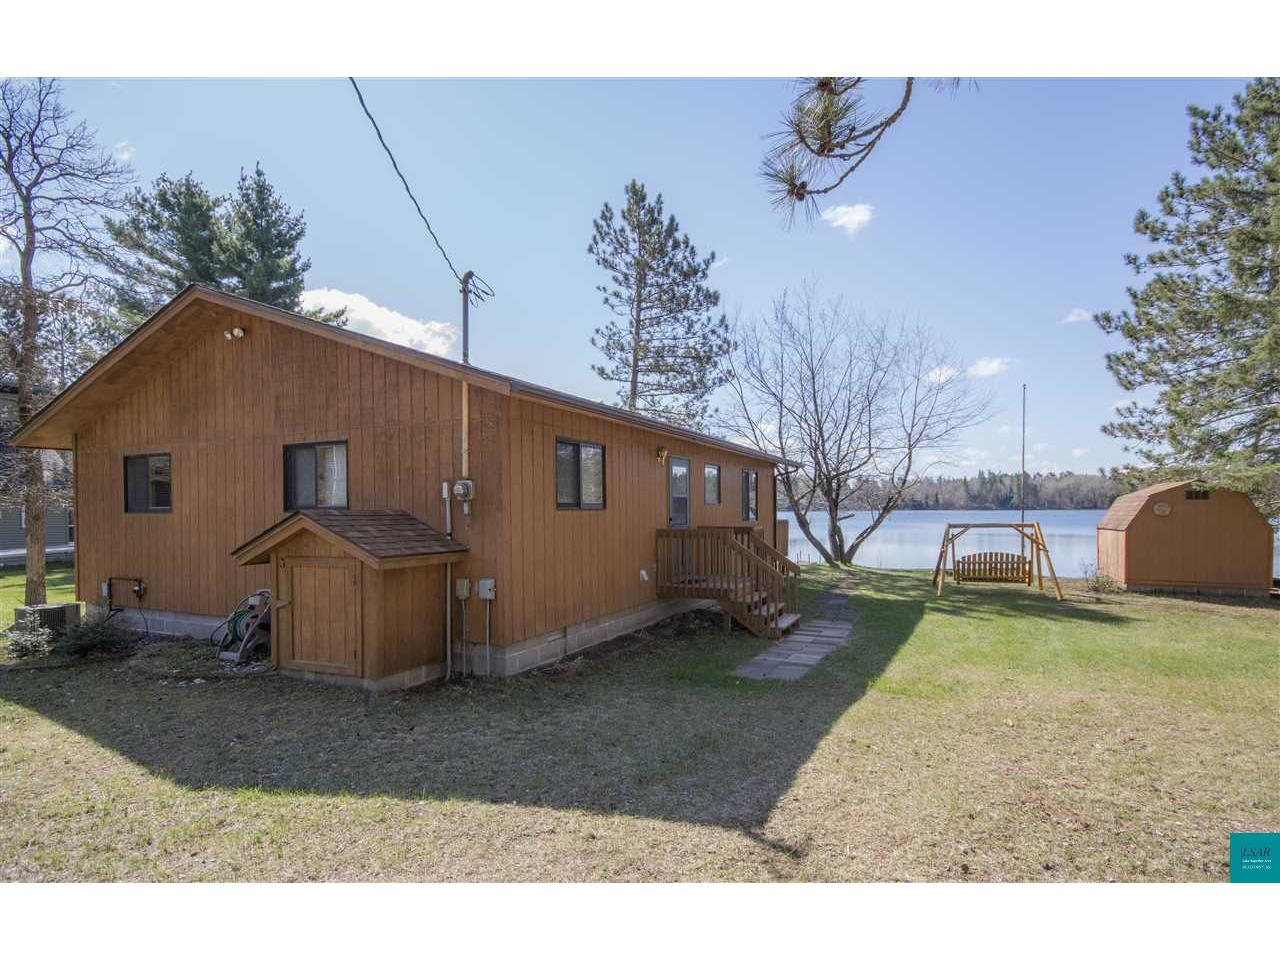 10560 Lake of the Woods Rd Solon Springs WI 54873 6074931 image1